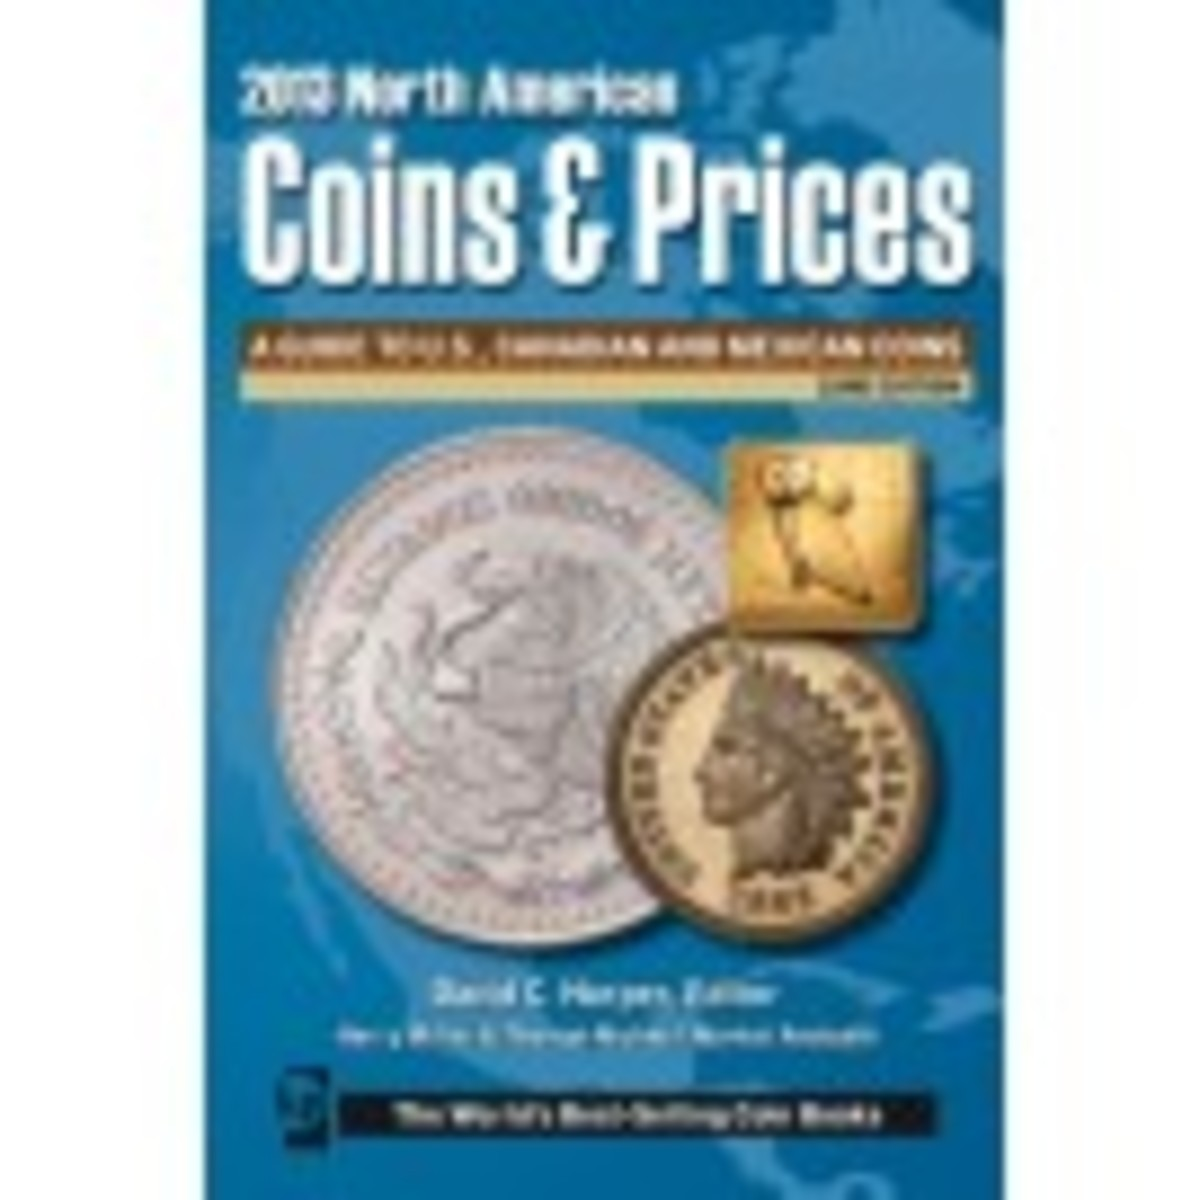 2013 North American Coins & Prices, 22nd Edition CD